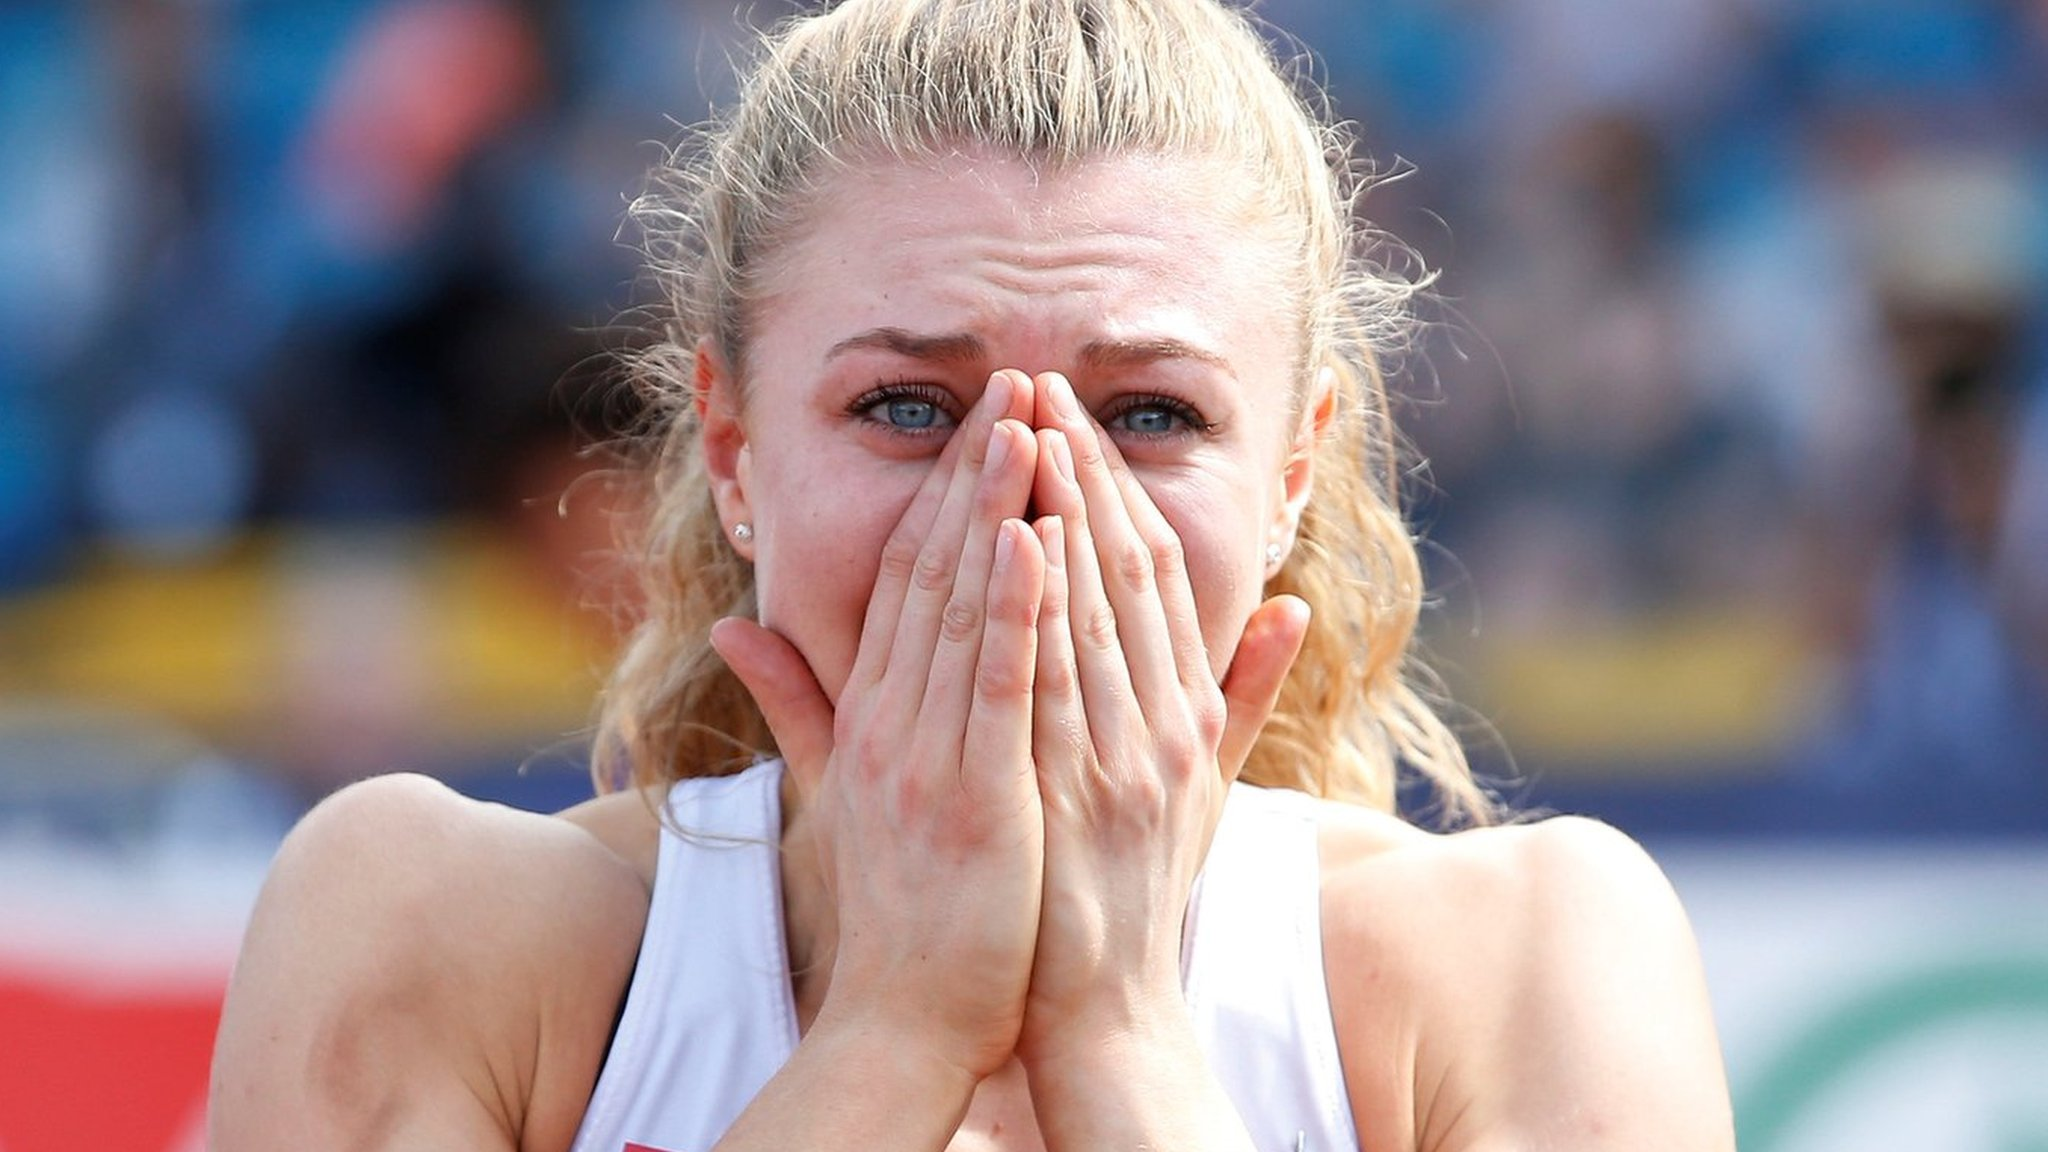 I thought I was going to die - British sprint champion on seizure that left her unable to walk or talk